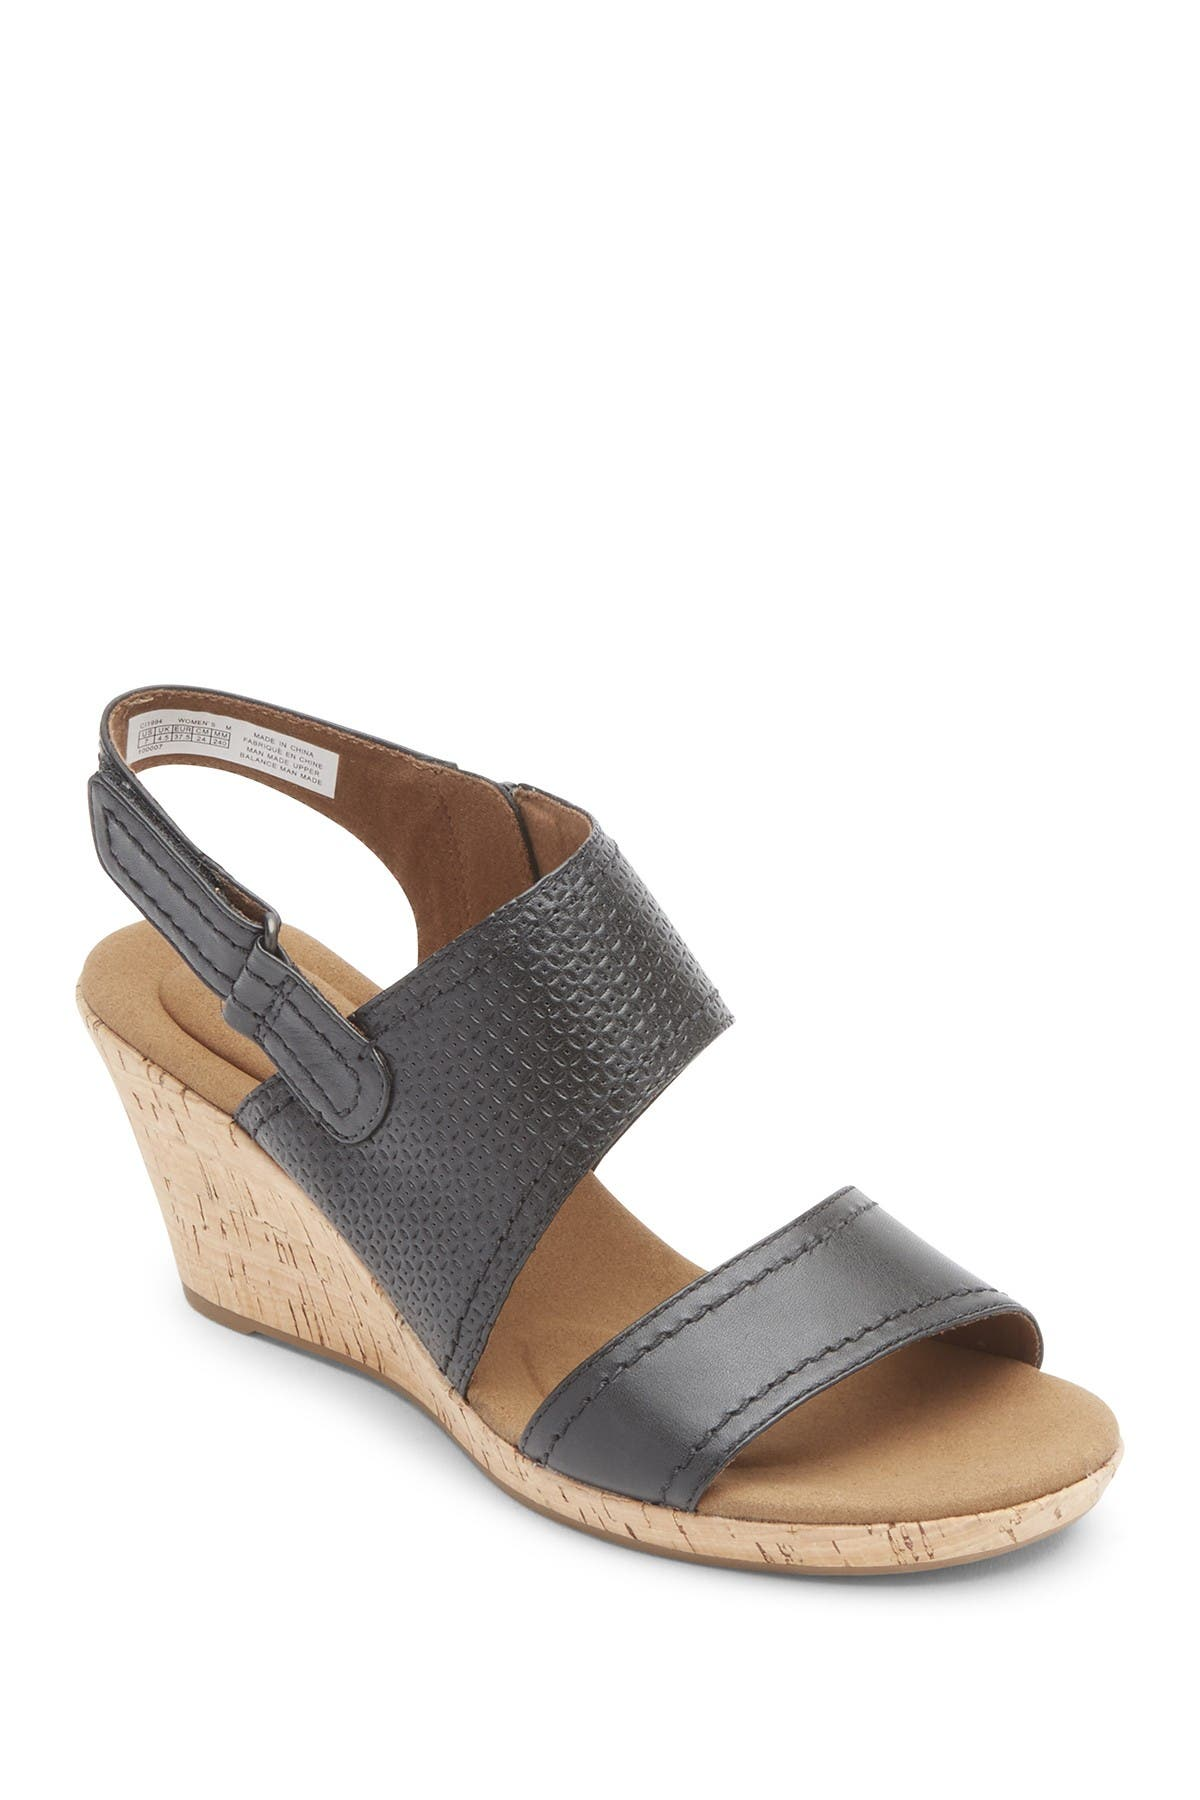 Image of Rockport Briah Wedge Sandal - Wide Width Available